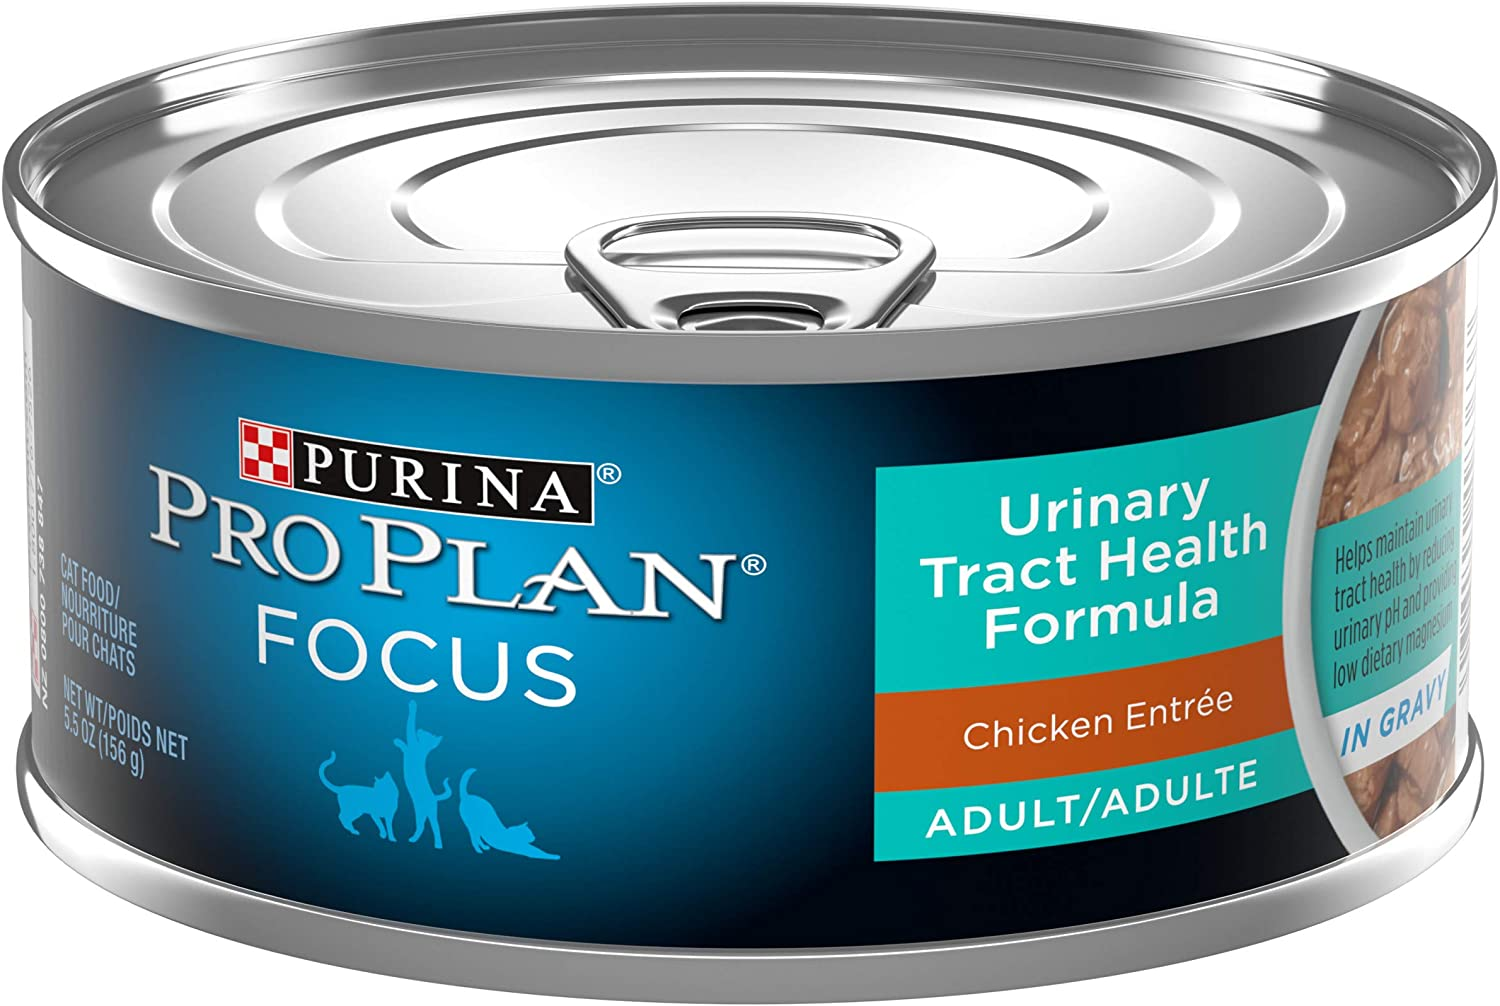 Purina Pro Plan Cat Food